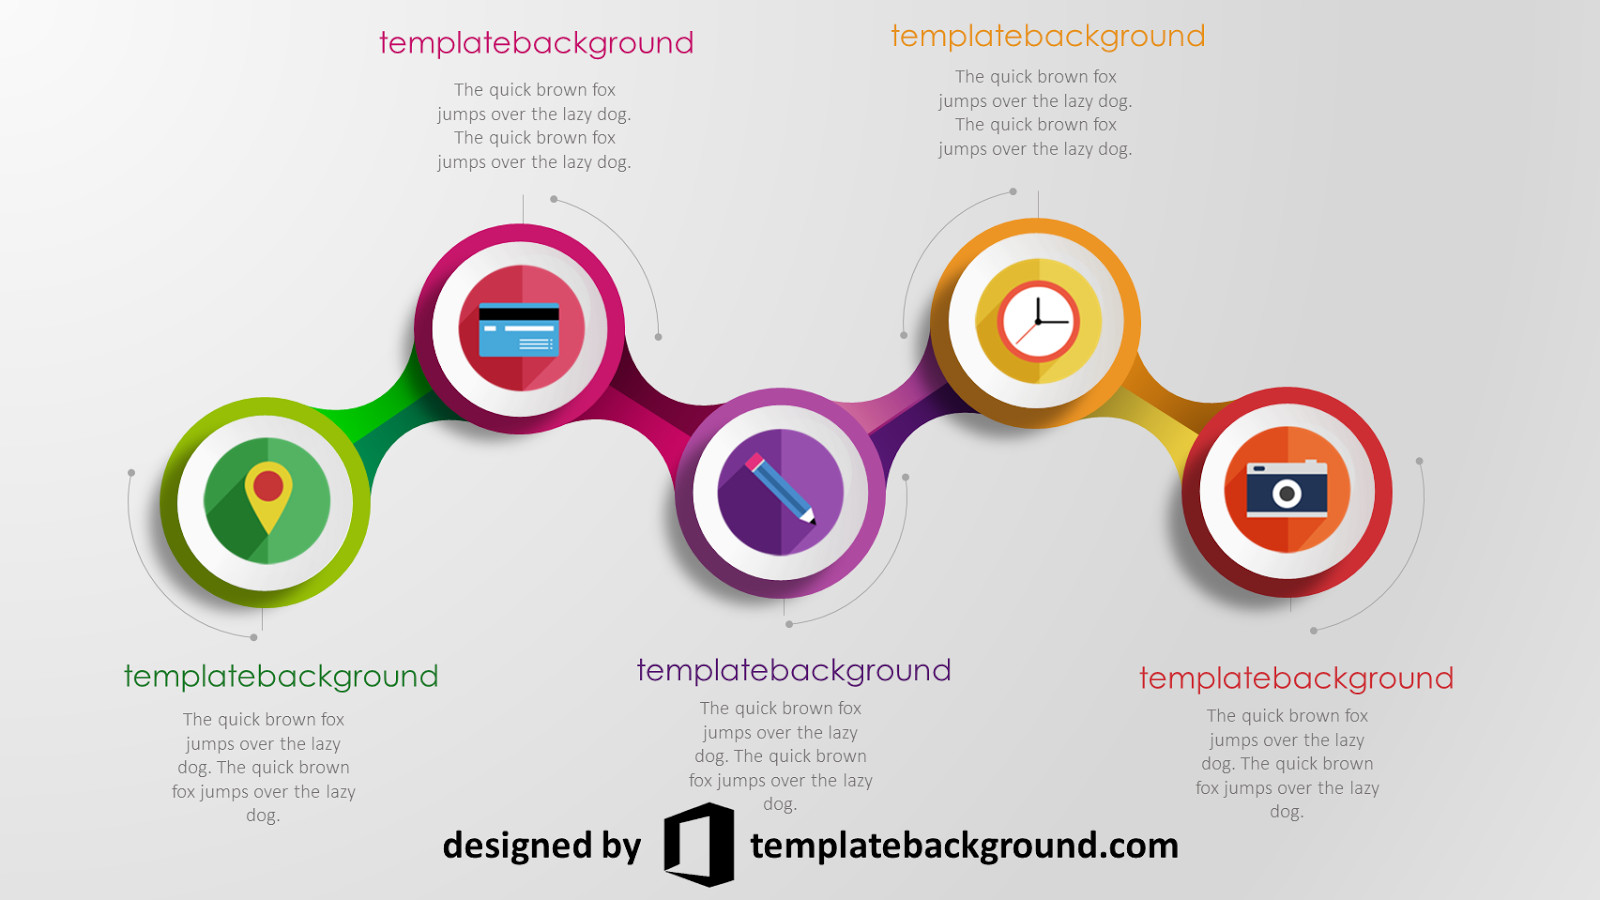 Free Animated Powerpoint Templates Animated Png for Ppt Free Download Transparent Animated